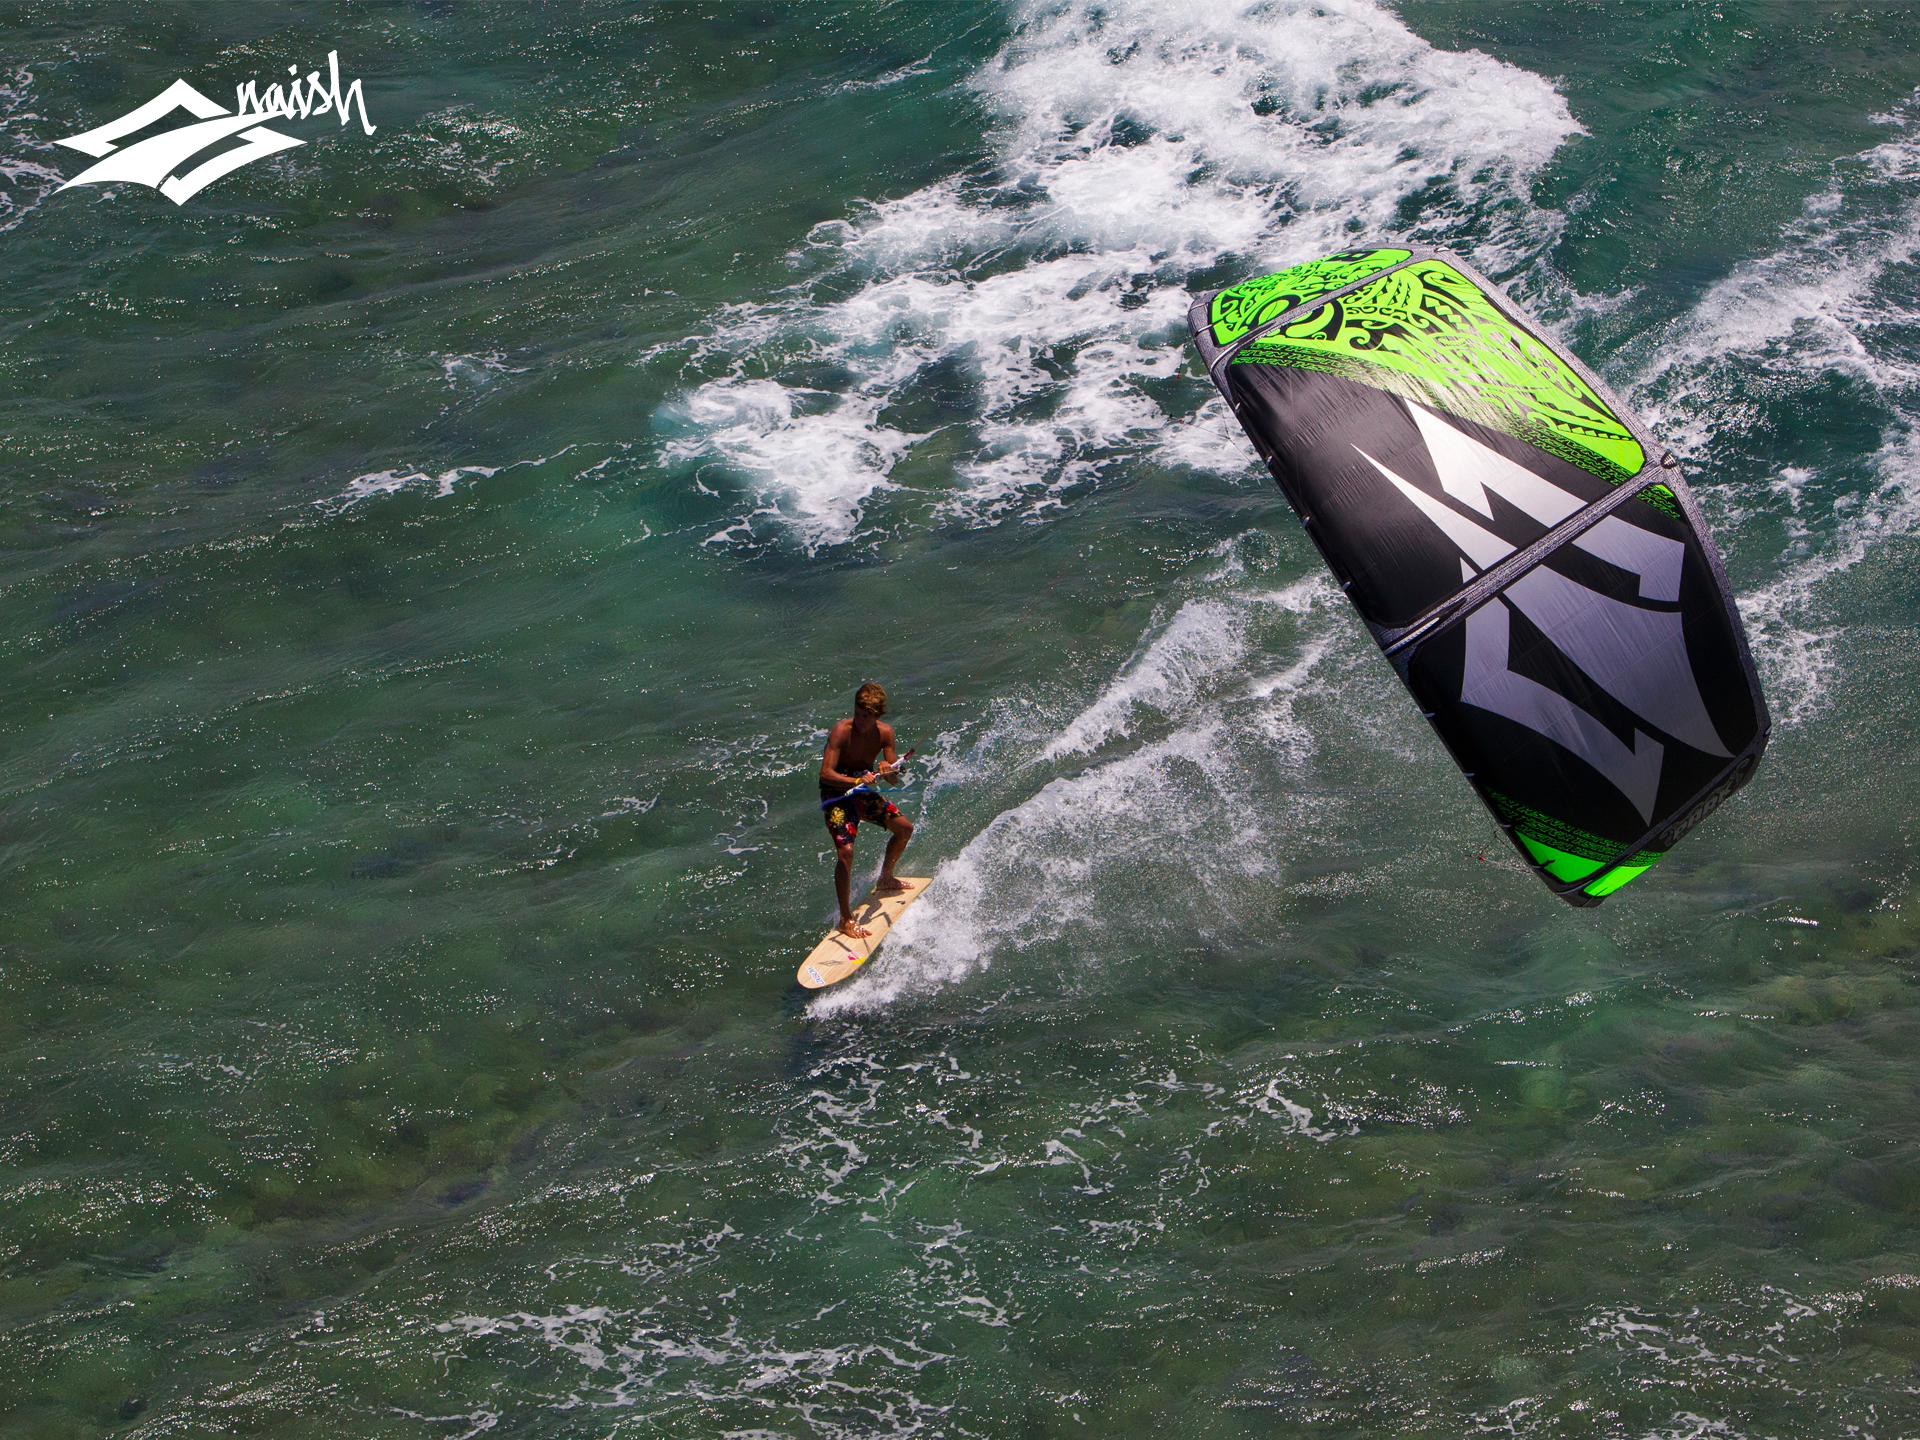 kitesurf wallpaper image - Kai Lenny cruising with the Naish Park kite and Alaia kiteboard off Hawaii - in resolution: Standard 4:3 1920 X 1440